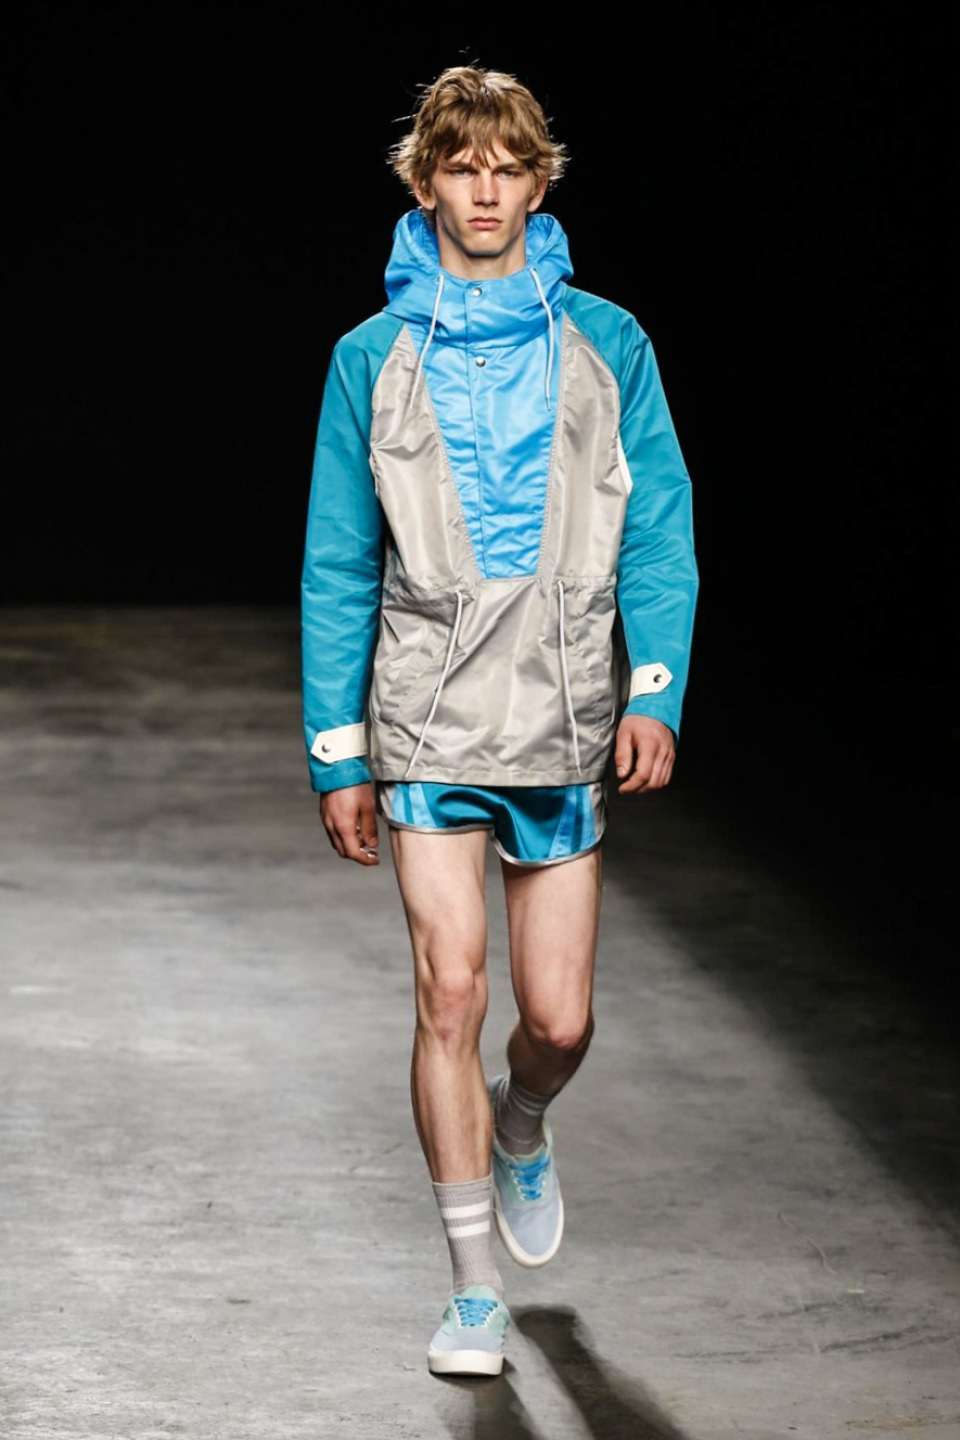 Topman Design SS 2016 London